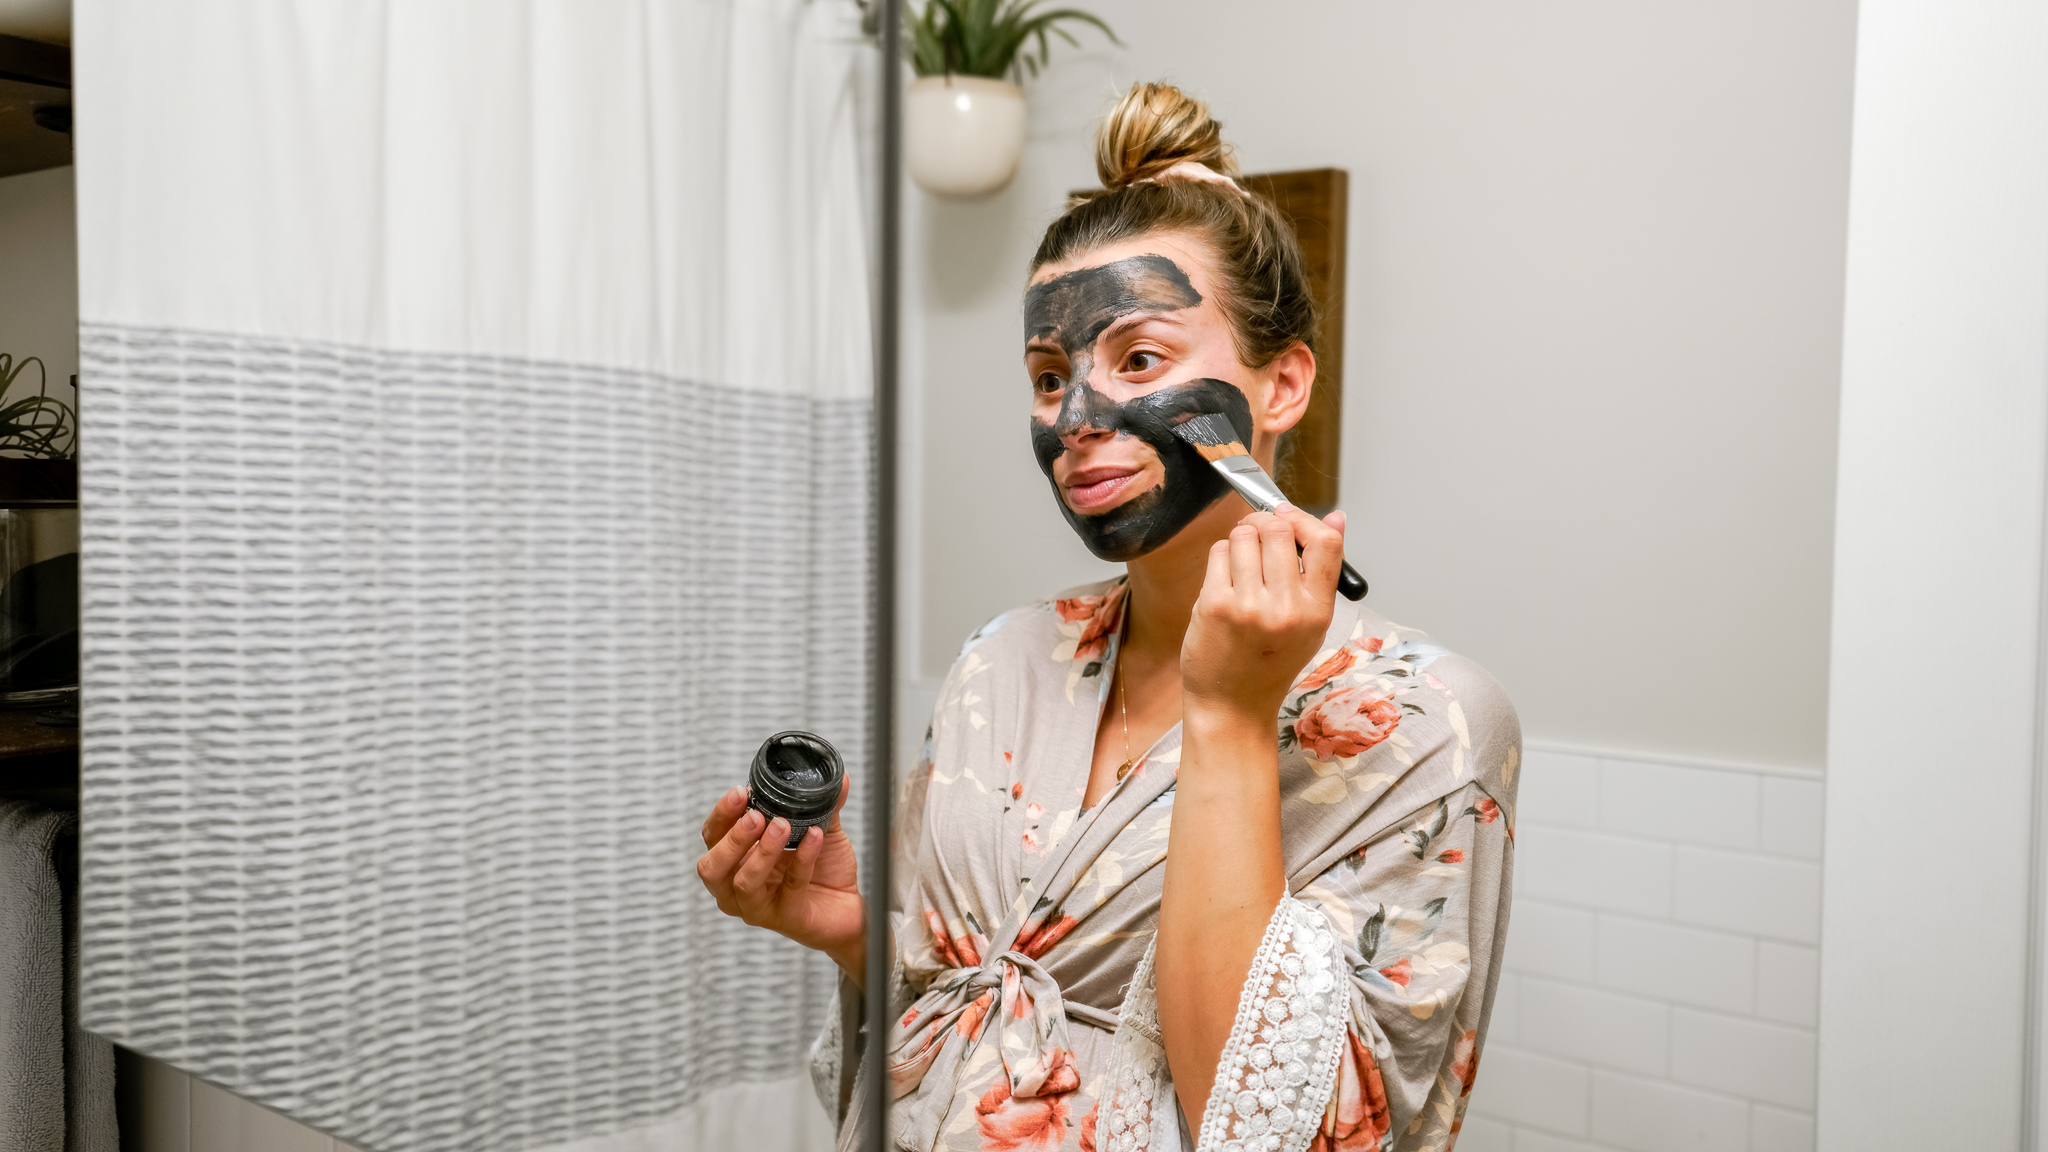 Tips for creating a calm and relaxing pregnancy night time routine, to get a good sleep! My healthy and mindful night time routine during my third trimester, including what I eat, skincare, stretches, calming essential oils, acupressure, and pregnancy pillow setup.